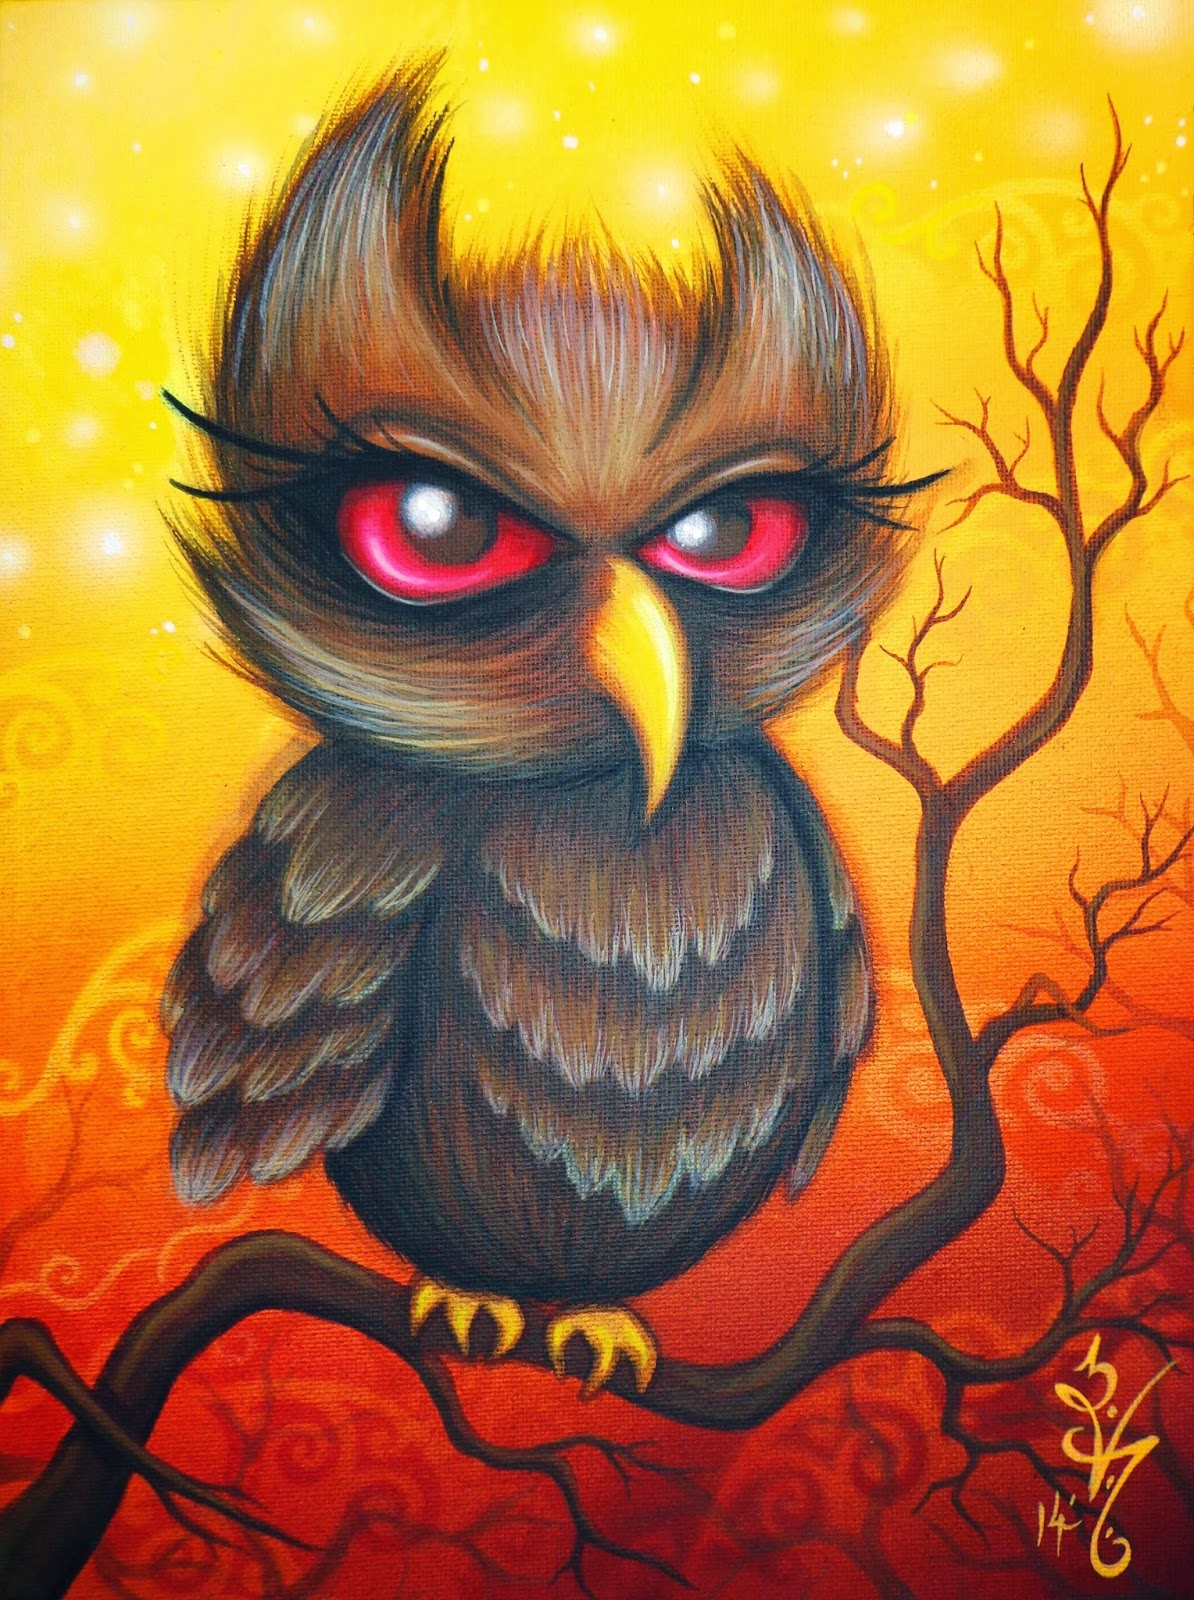 https://www.etsy.com/listing/201410918/original-fantasy-lowbrow-big-eye-autumn?ref=shop_home_active_1